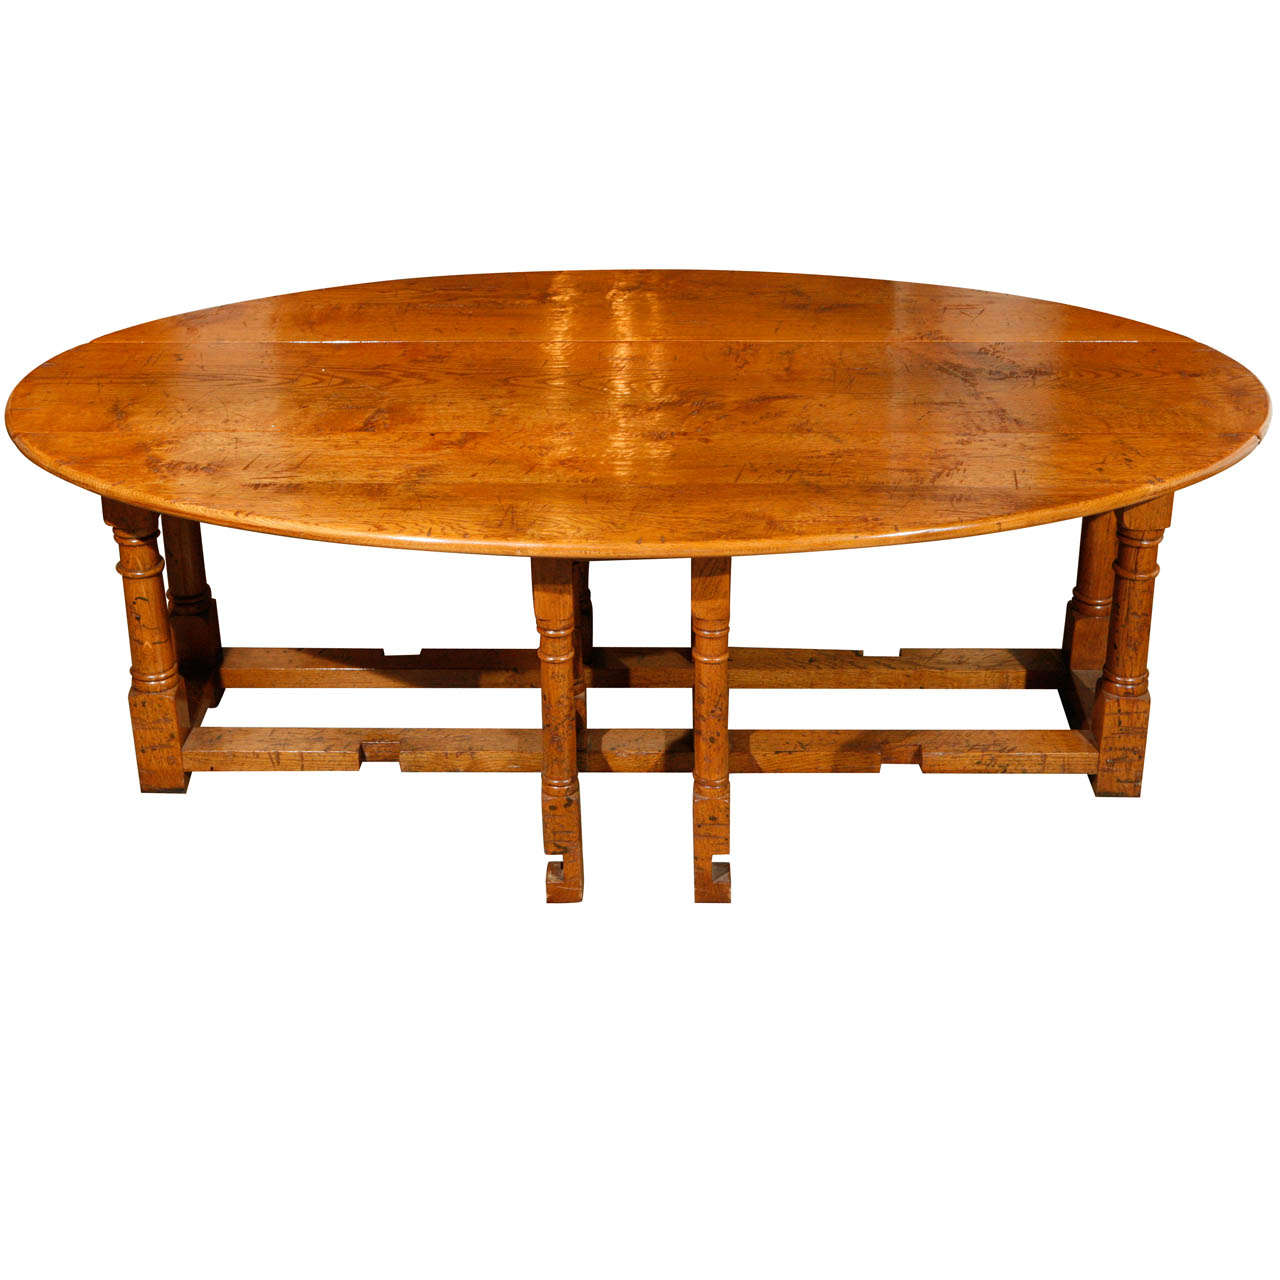 Vintage French Country Coffee Table At 1stdibs